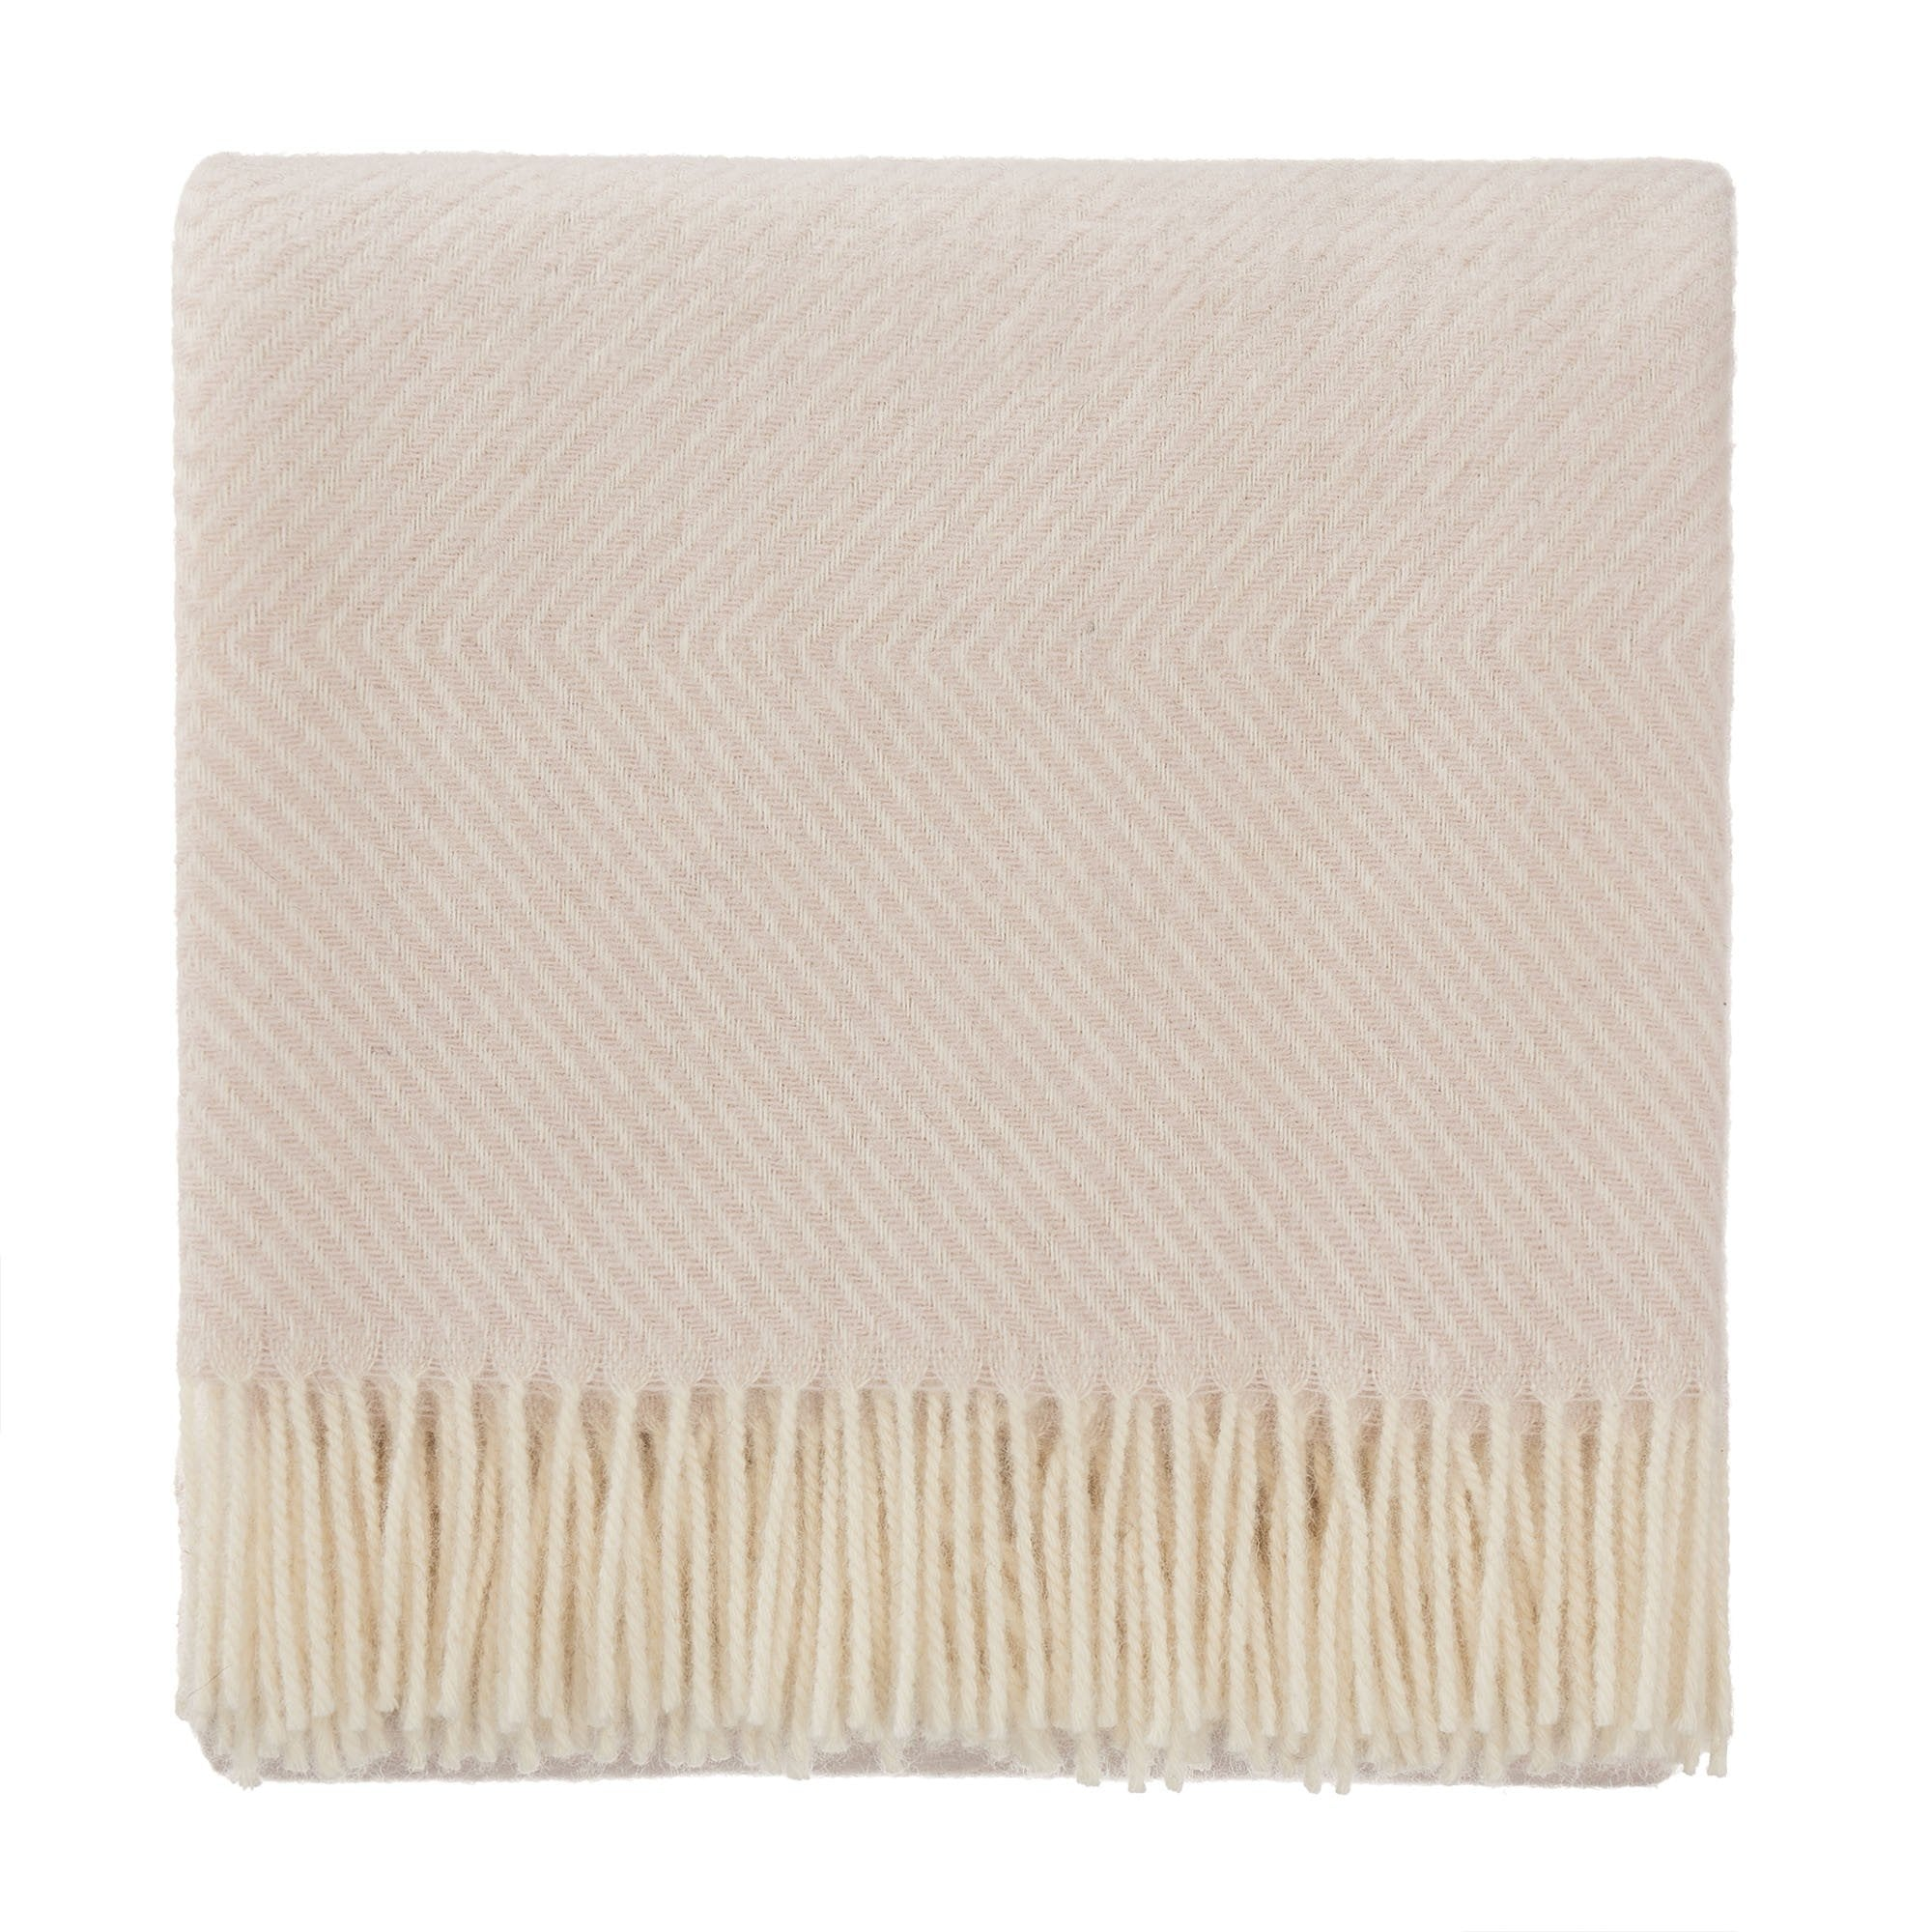 Gotland blanket, powder pink & cream, 100% new wool